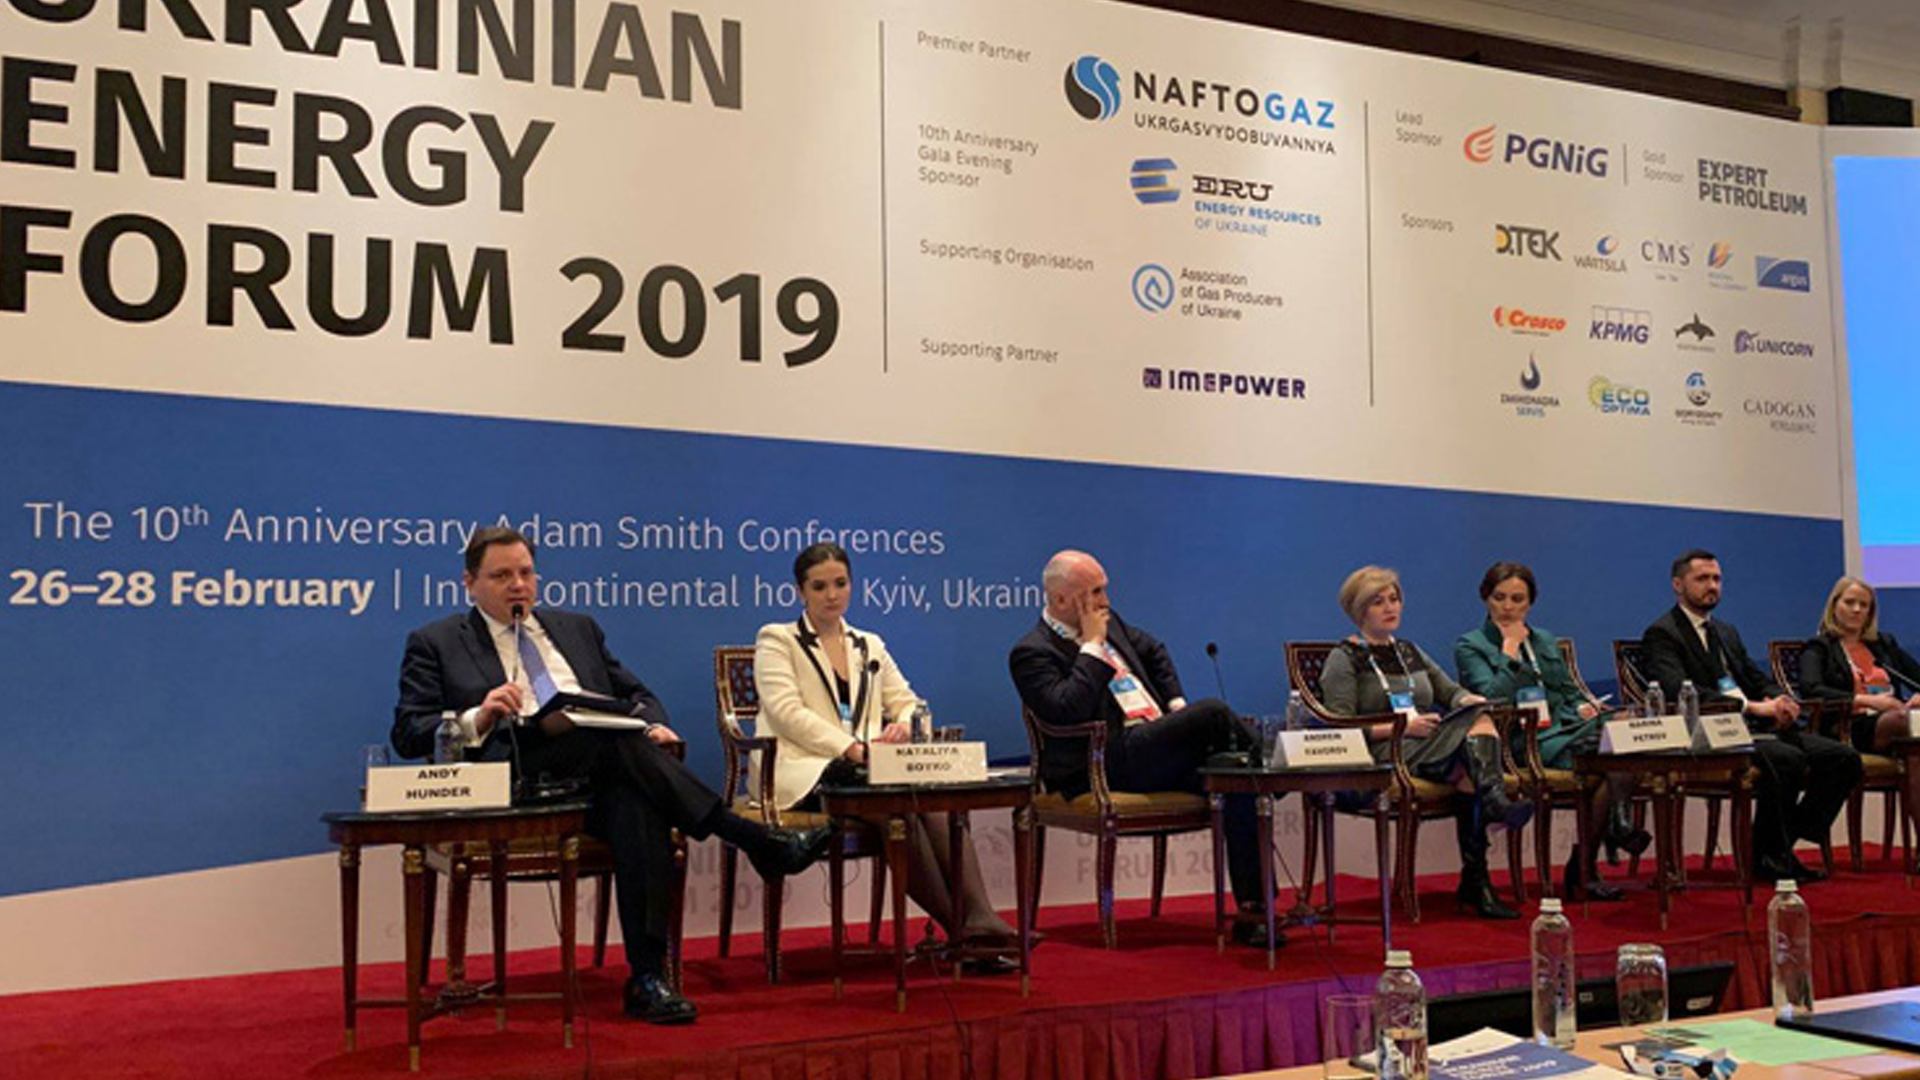 Ukrainian Energy Forum 2019 – Highlights